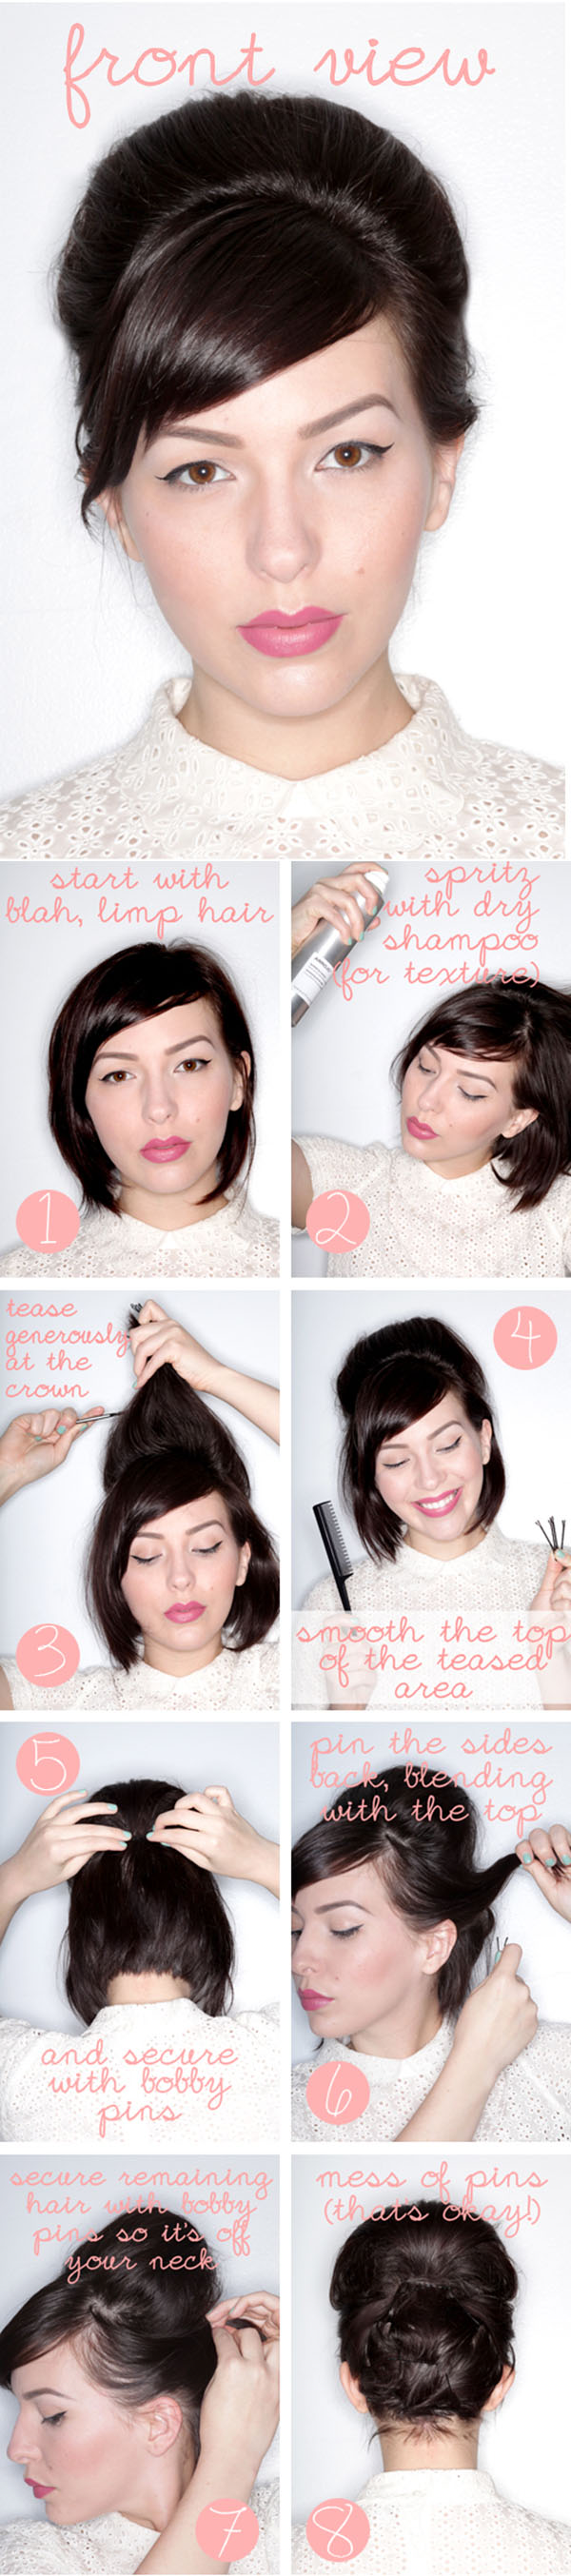 how to do an updo in short hair - hair romance